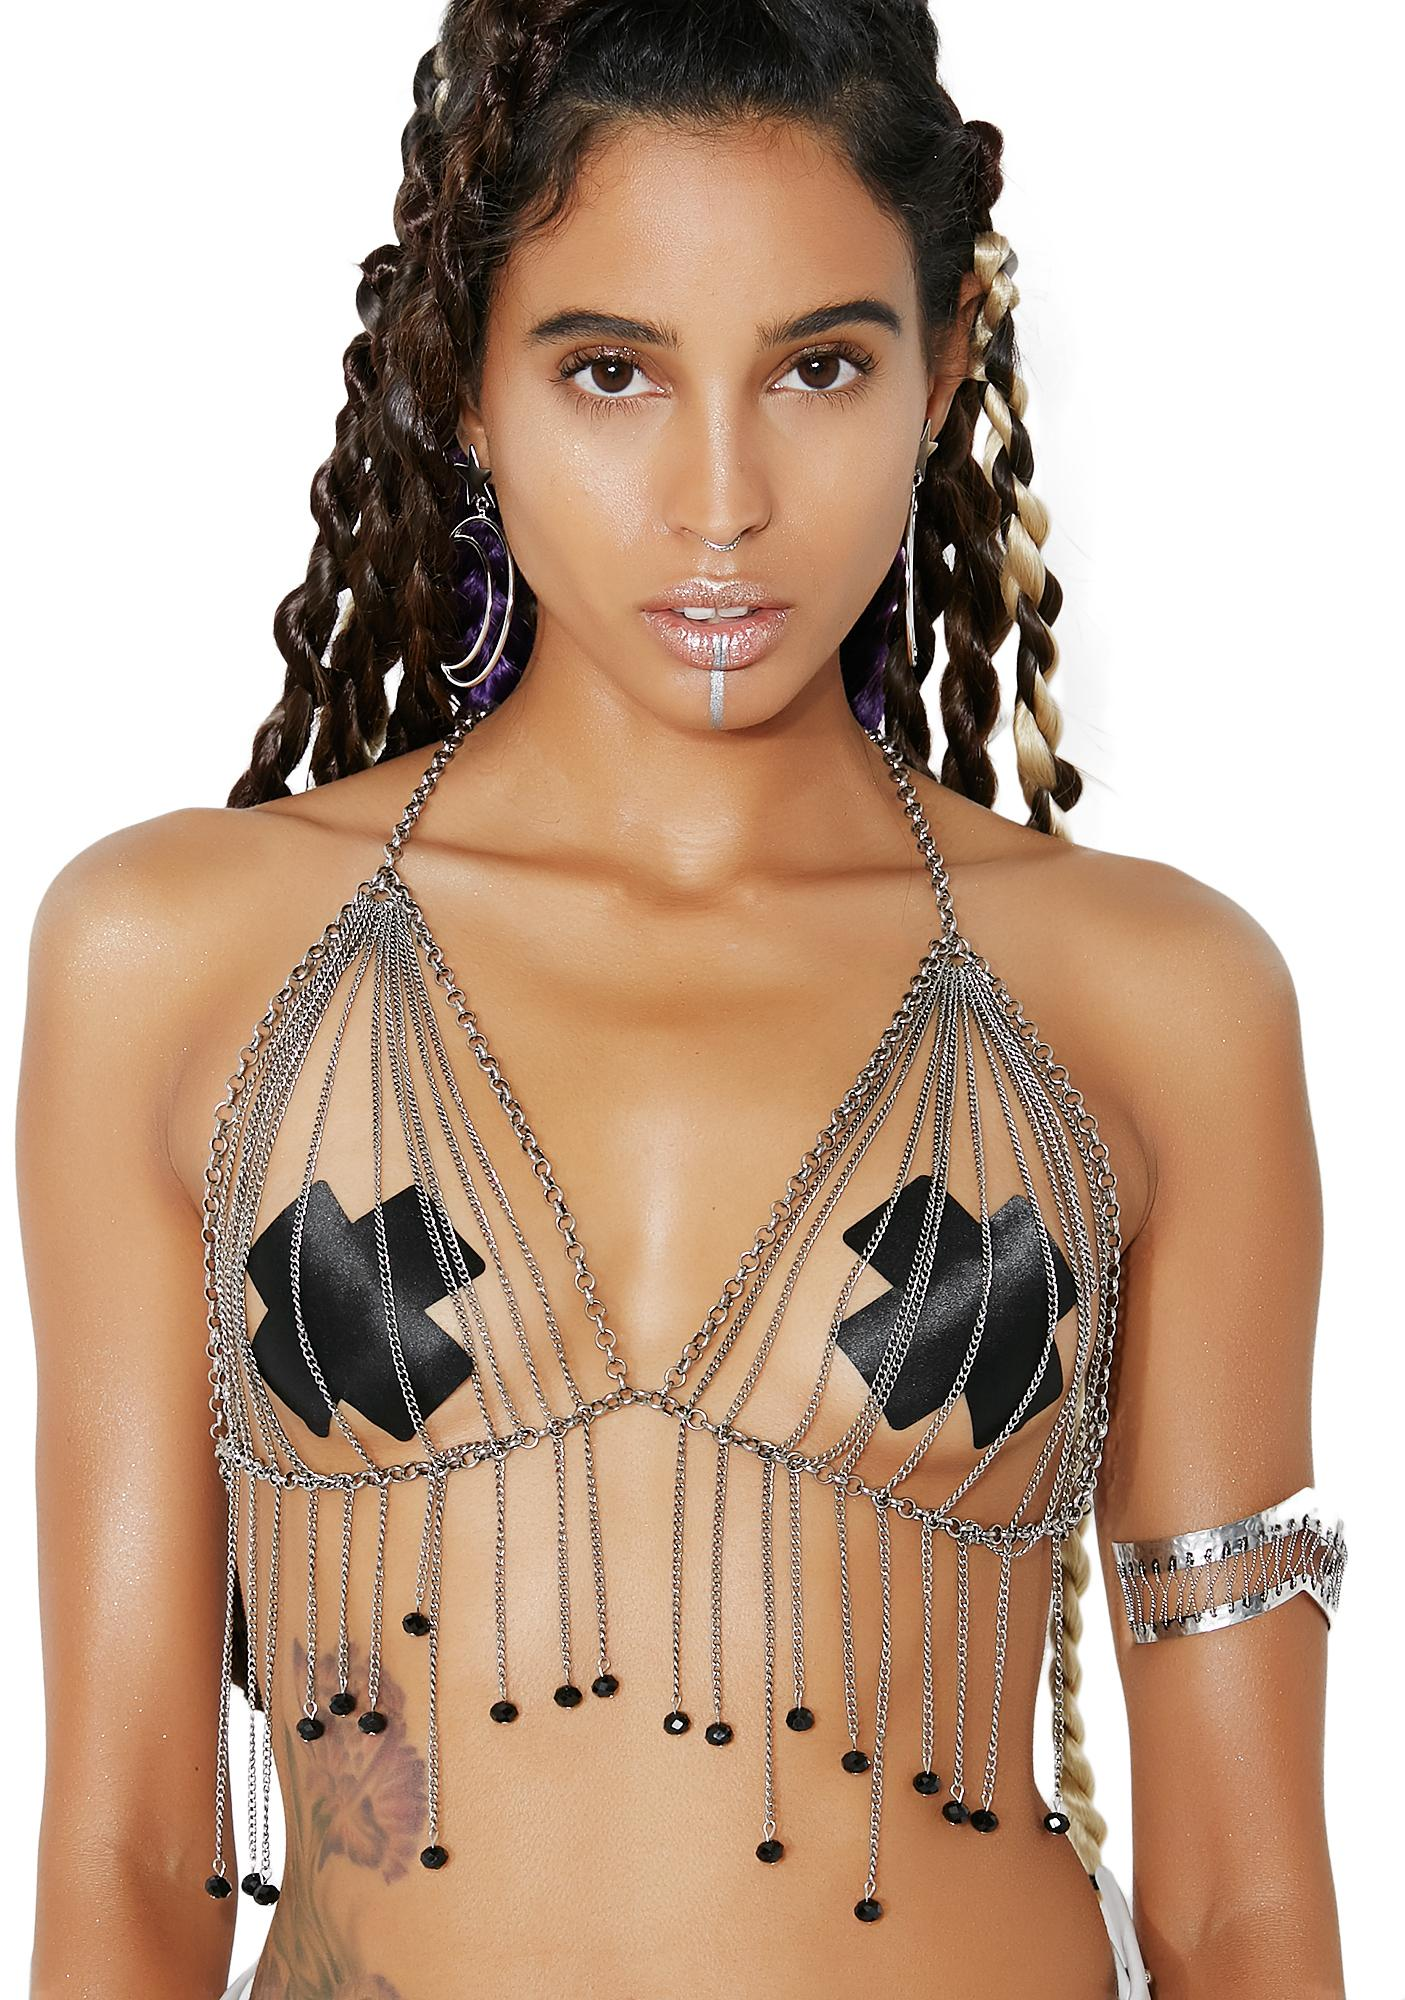 Chasin' Waterfalls Chain Bralette